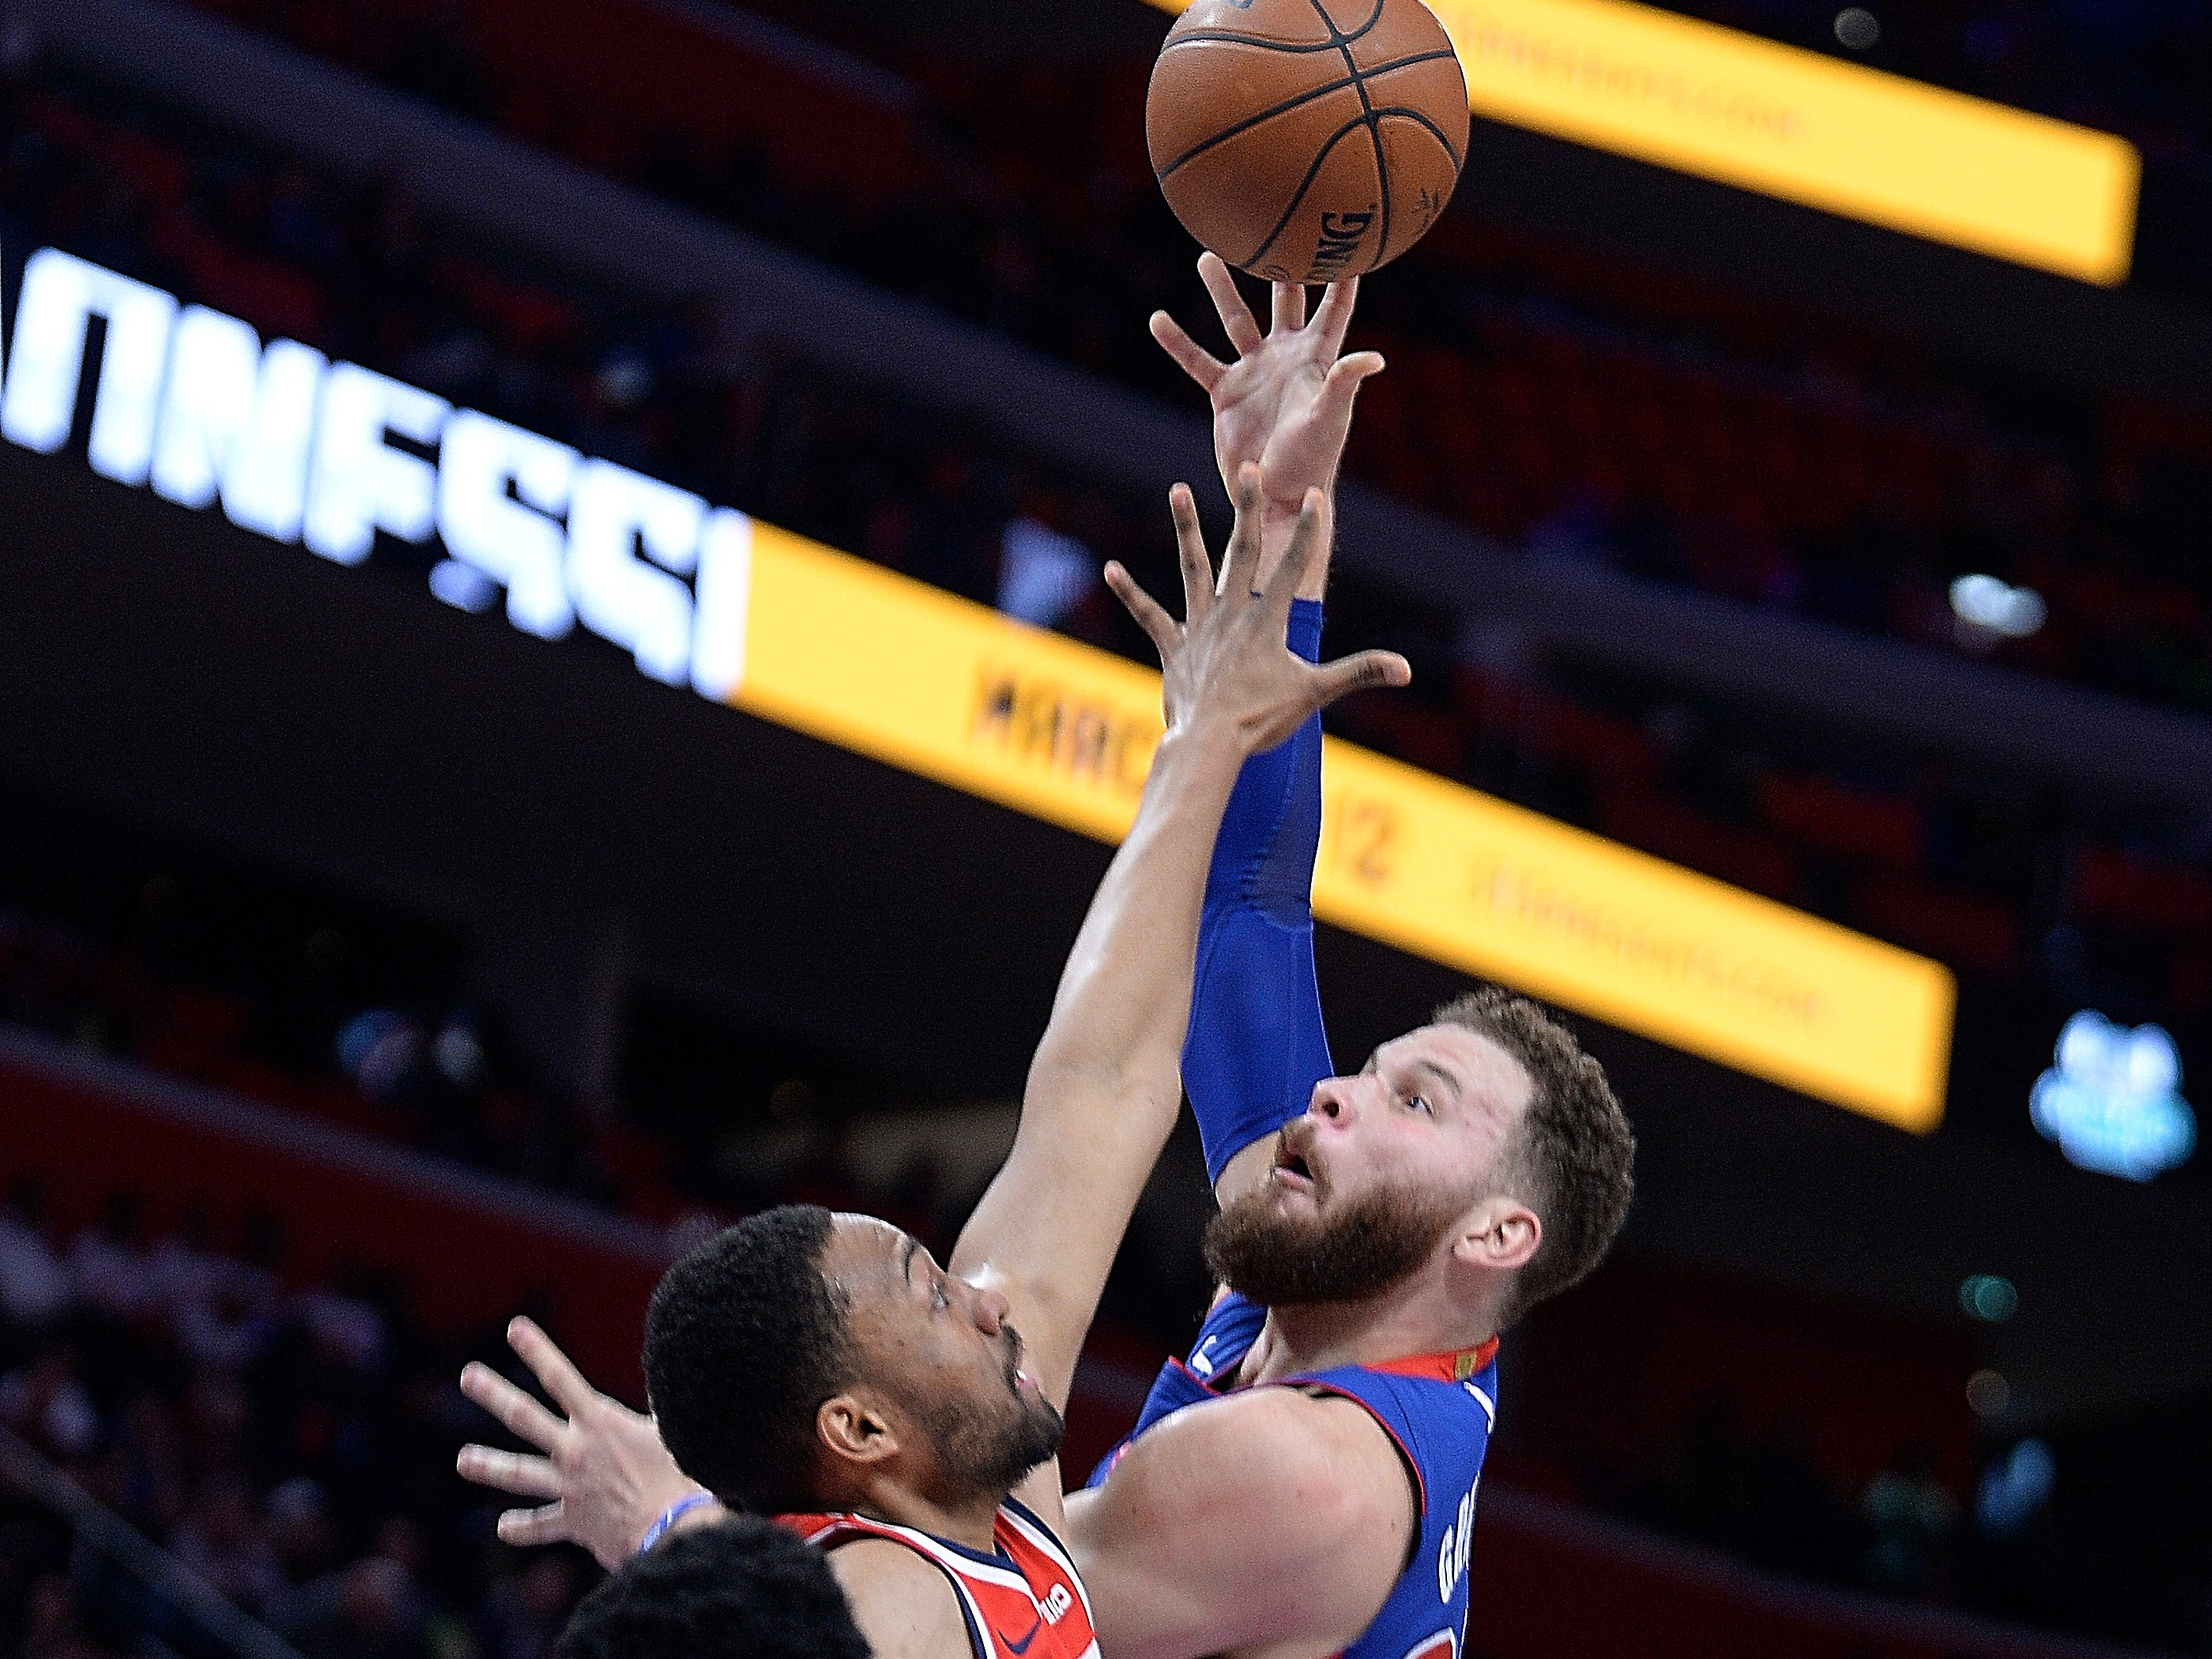 Pistons' Blake Griffin scores over Wizards' Jabari Parker in the second quarter.